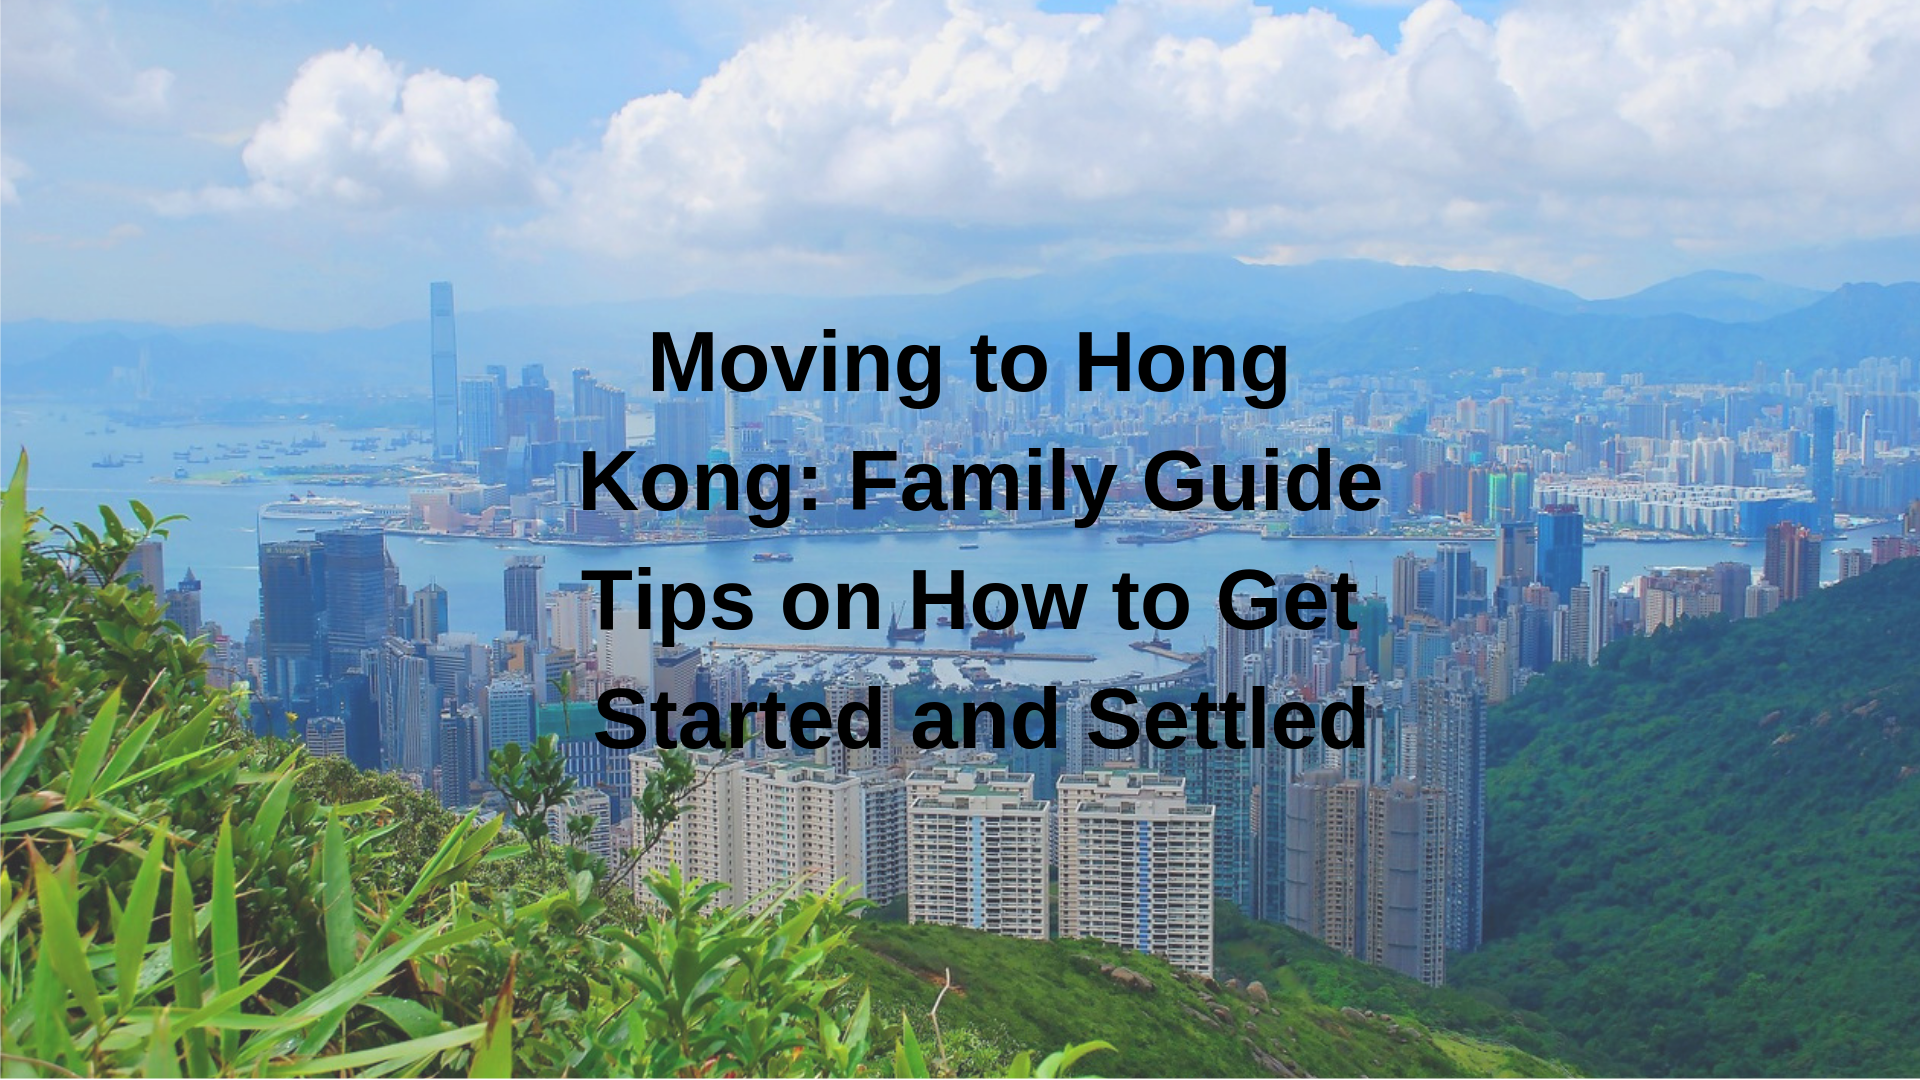 Moving to Hong Kong: Family Guide and Tips on How to Get Started and Settled